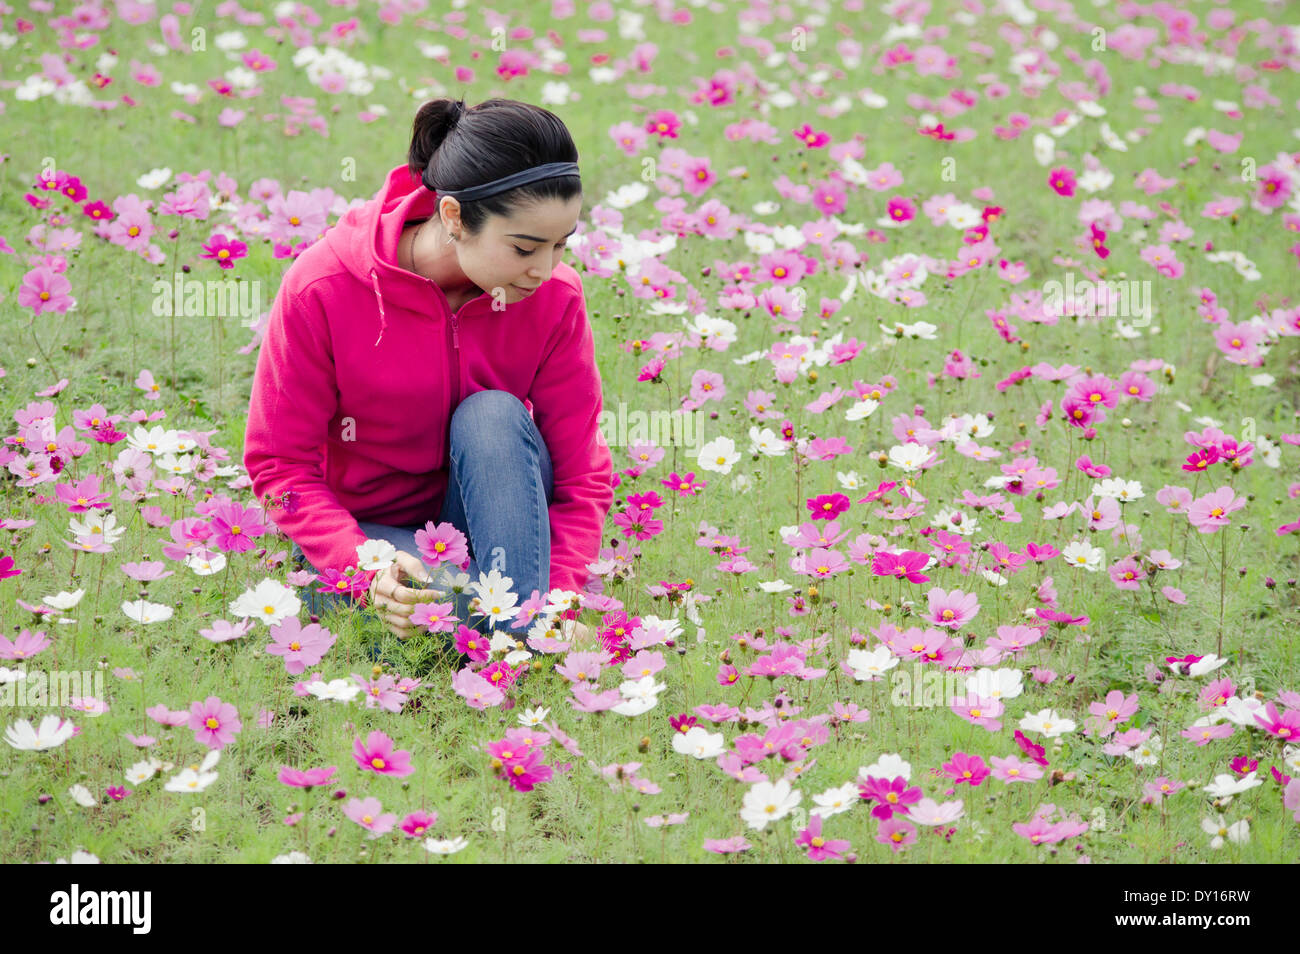 Young woman in field of pink purple cosmos flowers - Stock Image